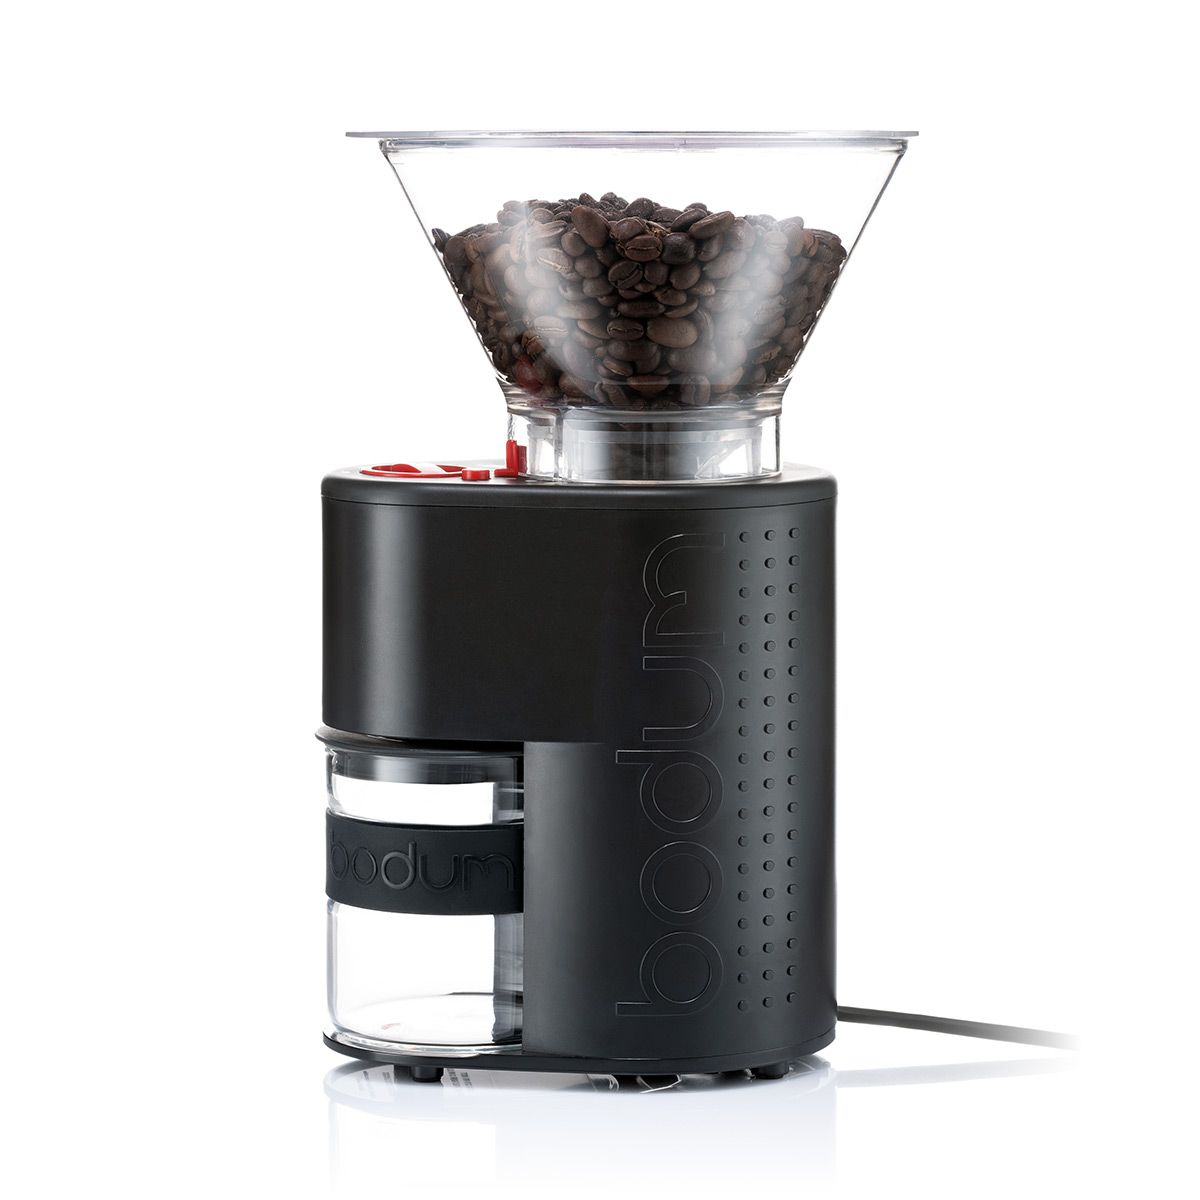 Bodum Bistro Premium Electric Burr Coffee Grinder